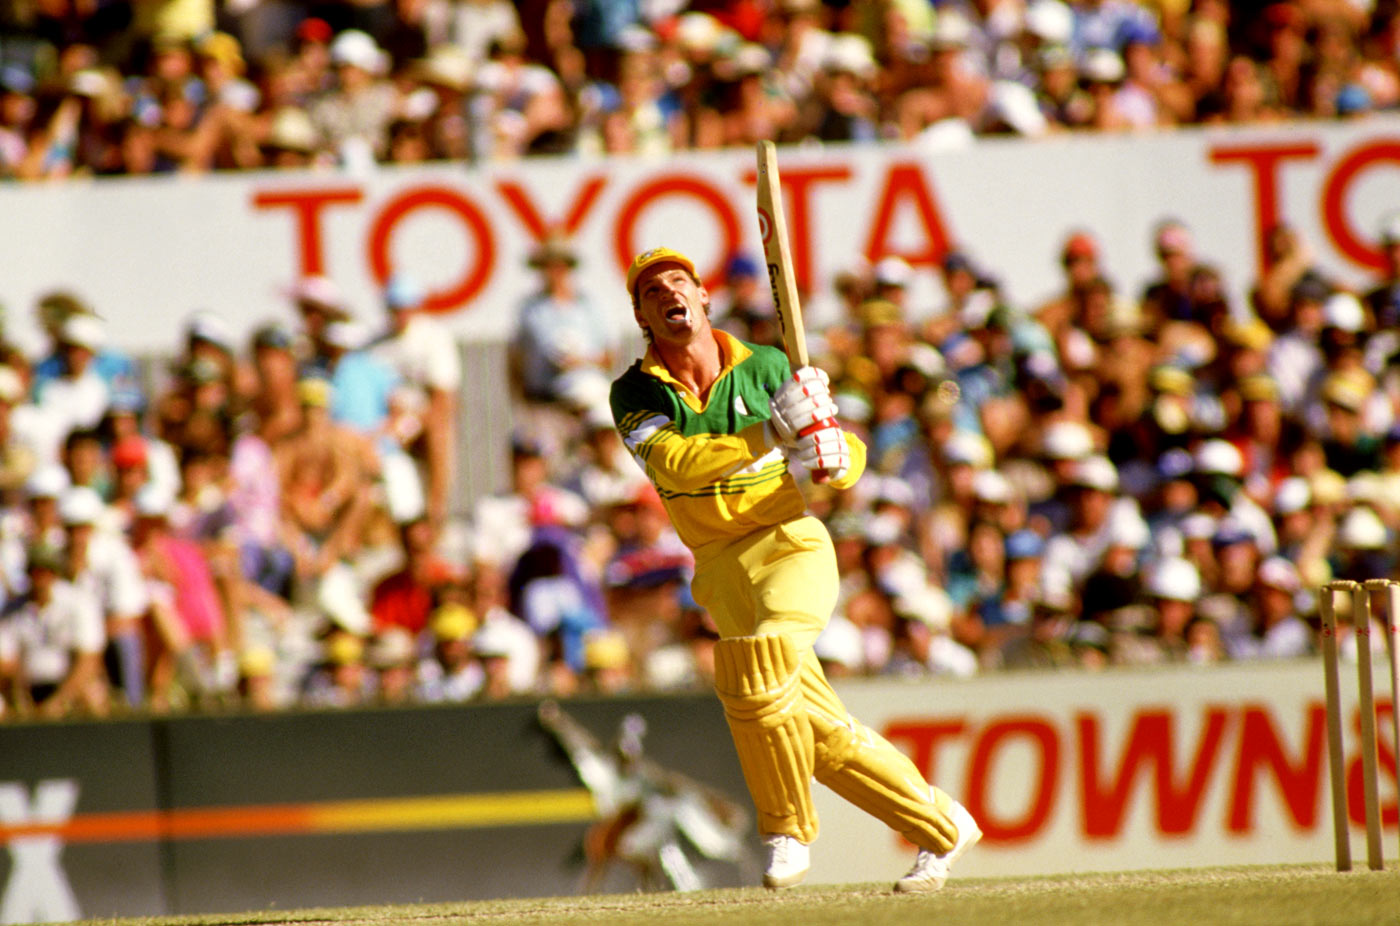 Dean Jones was a generation ahead of his time in one-day batting and fielding